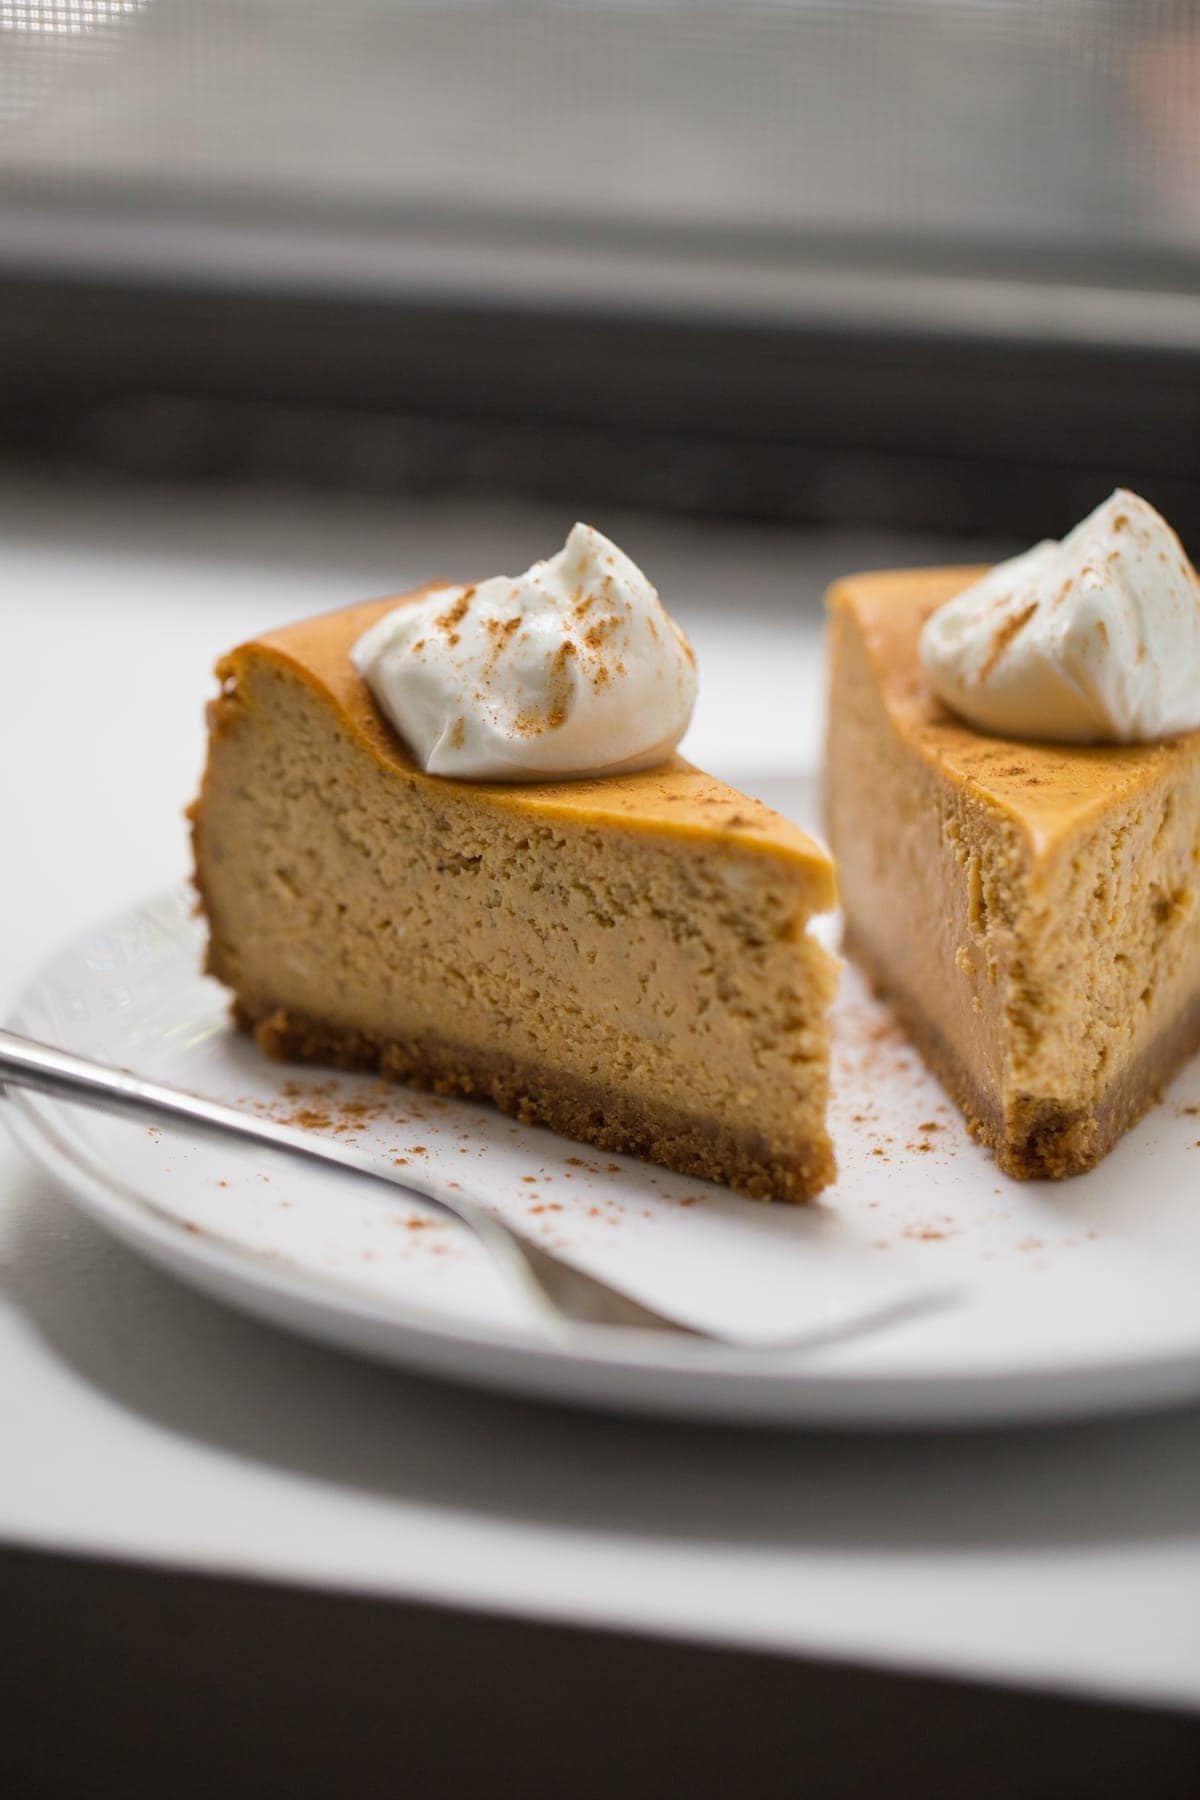 slices of pumpkin cheesecake on white plate